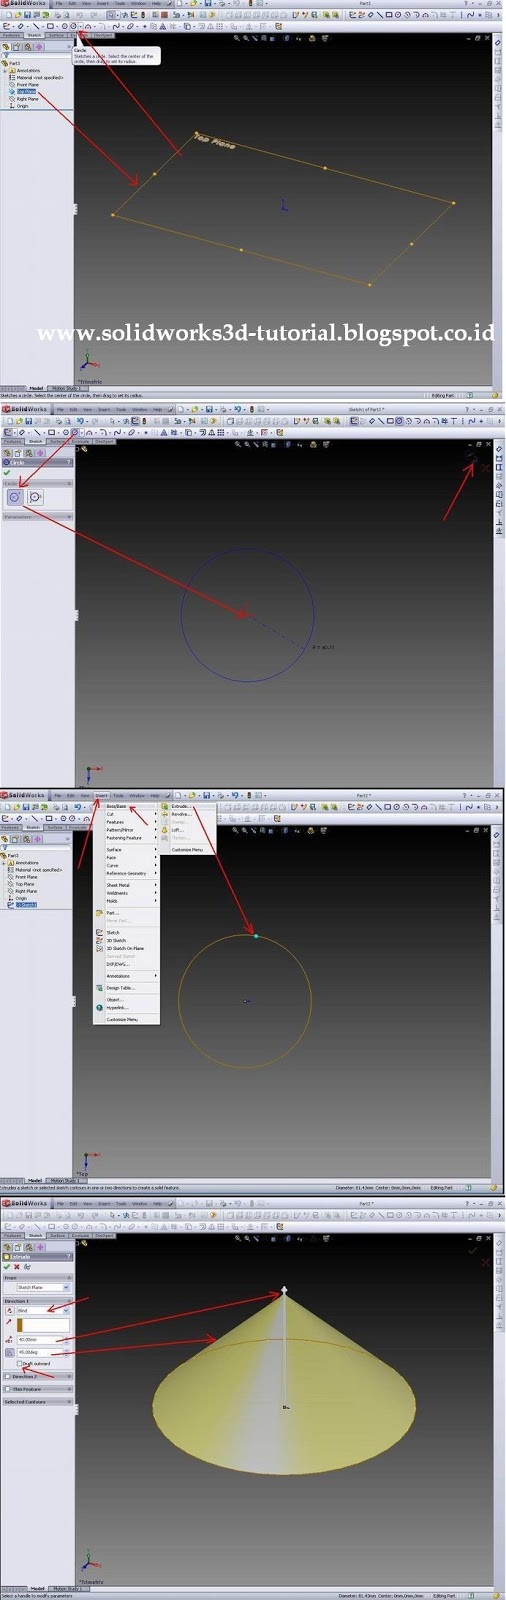 Solidworks design tutorial i have tried to create a tapered shape solidworks we make a circle first in the top plane click on the origin 00 then drag the mouse to form a circle baditri Image collections